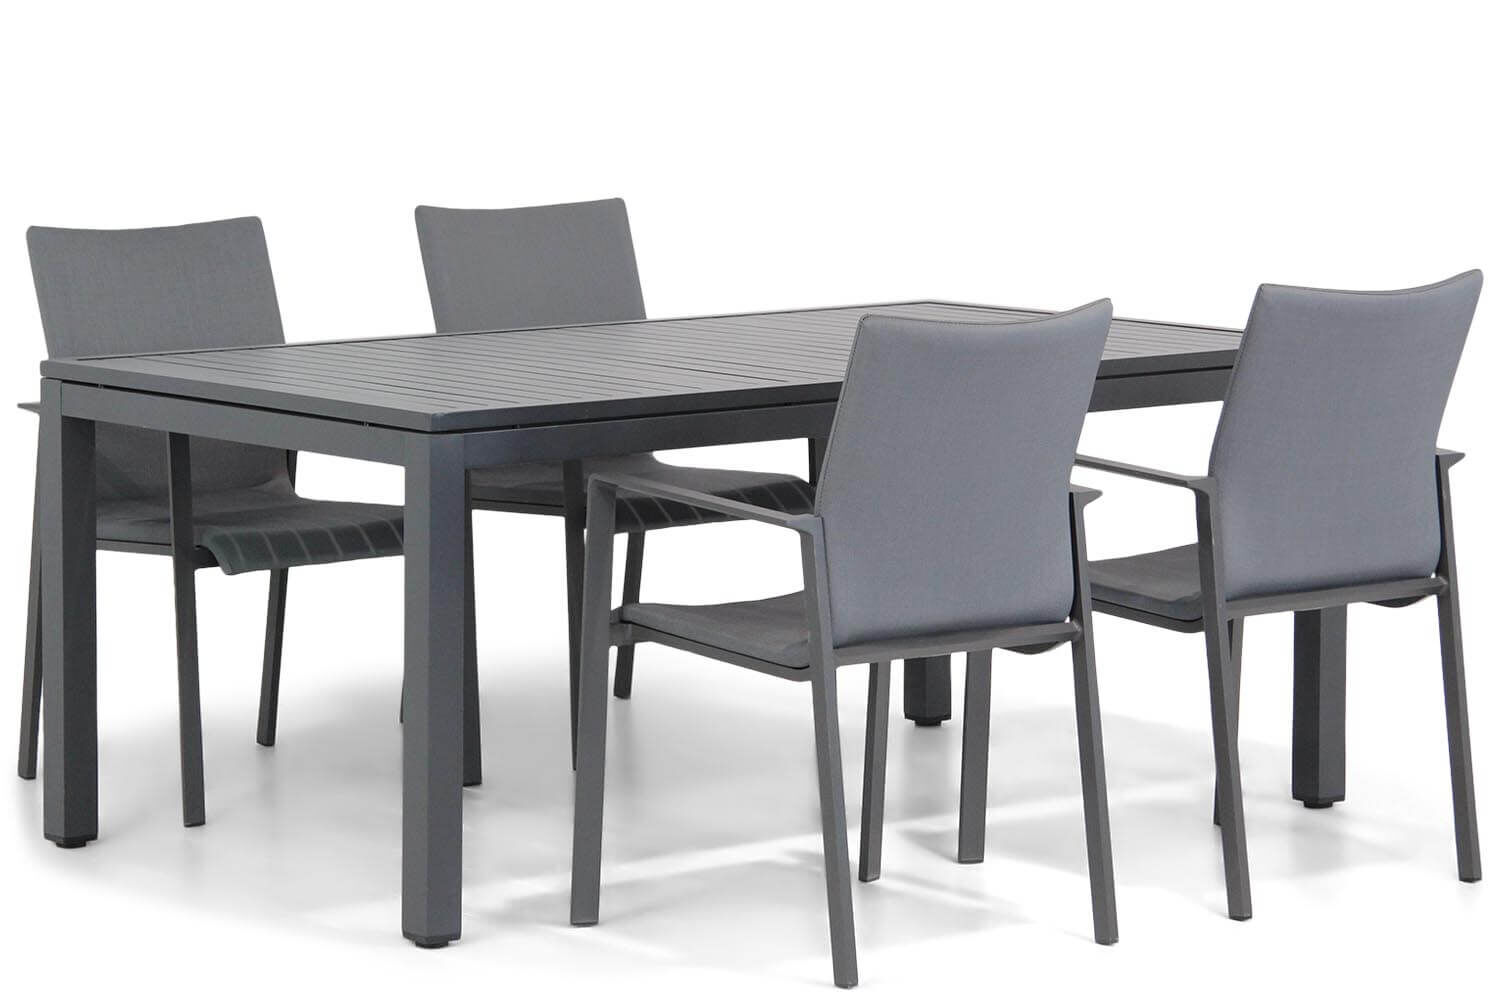 Lifestyle Rome/Concept 160 cm dining tuinset 5-delig